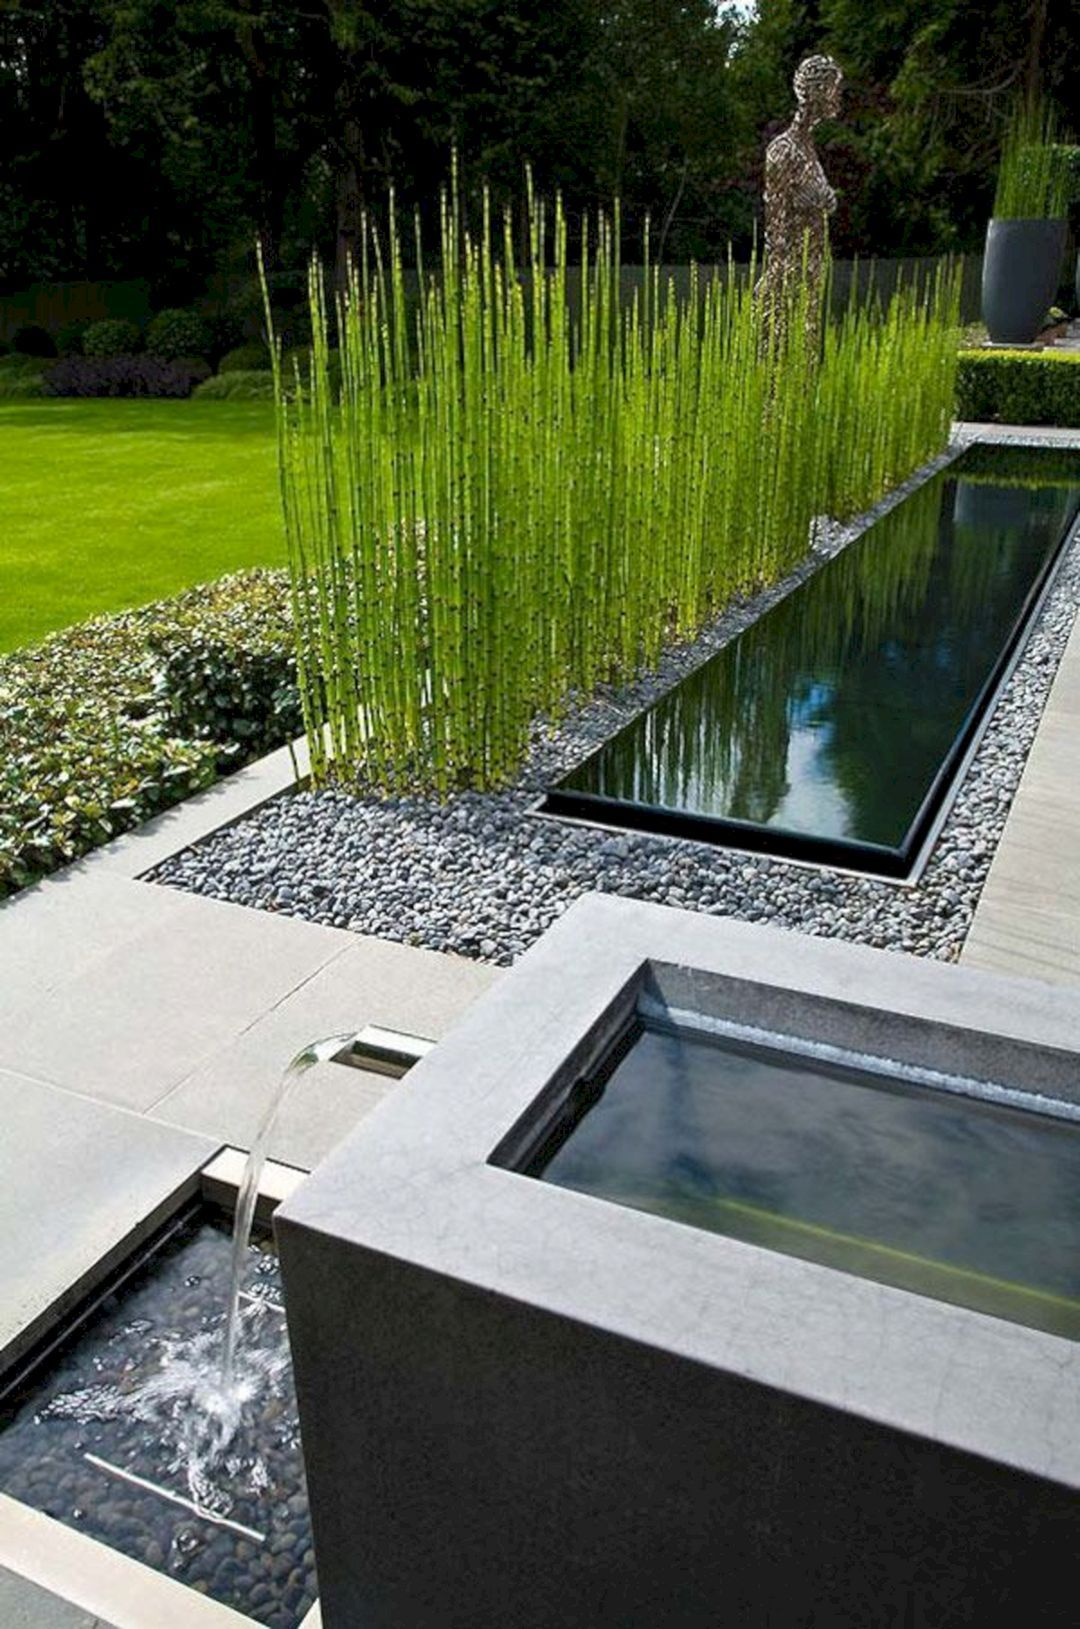 35 Modern Front Yard Landscaping Ideas With Urban Style: 40 Incredible Modern Garden Landscaping Design Ideas On A Budget